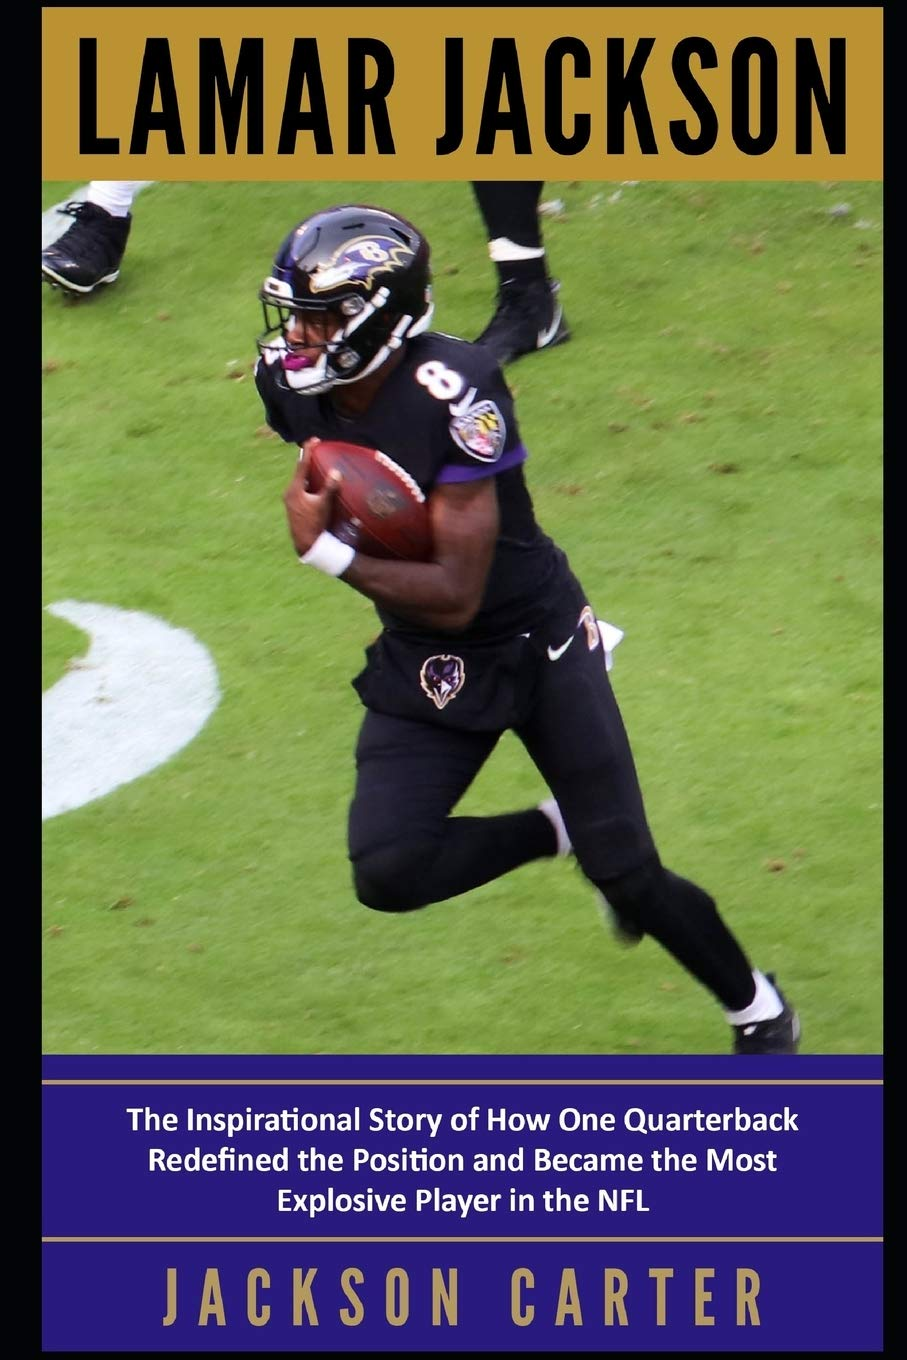 Lamar Jackson The Inspirational Story Of How One Quarterback Redefined The Position And Became The Most Explosive Player In The Nfl Carter Jackson 9781673505450 Amazon Com Books